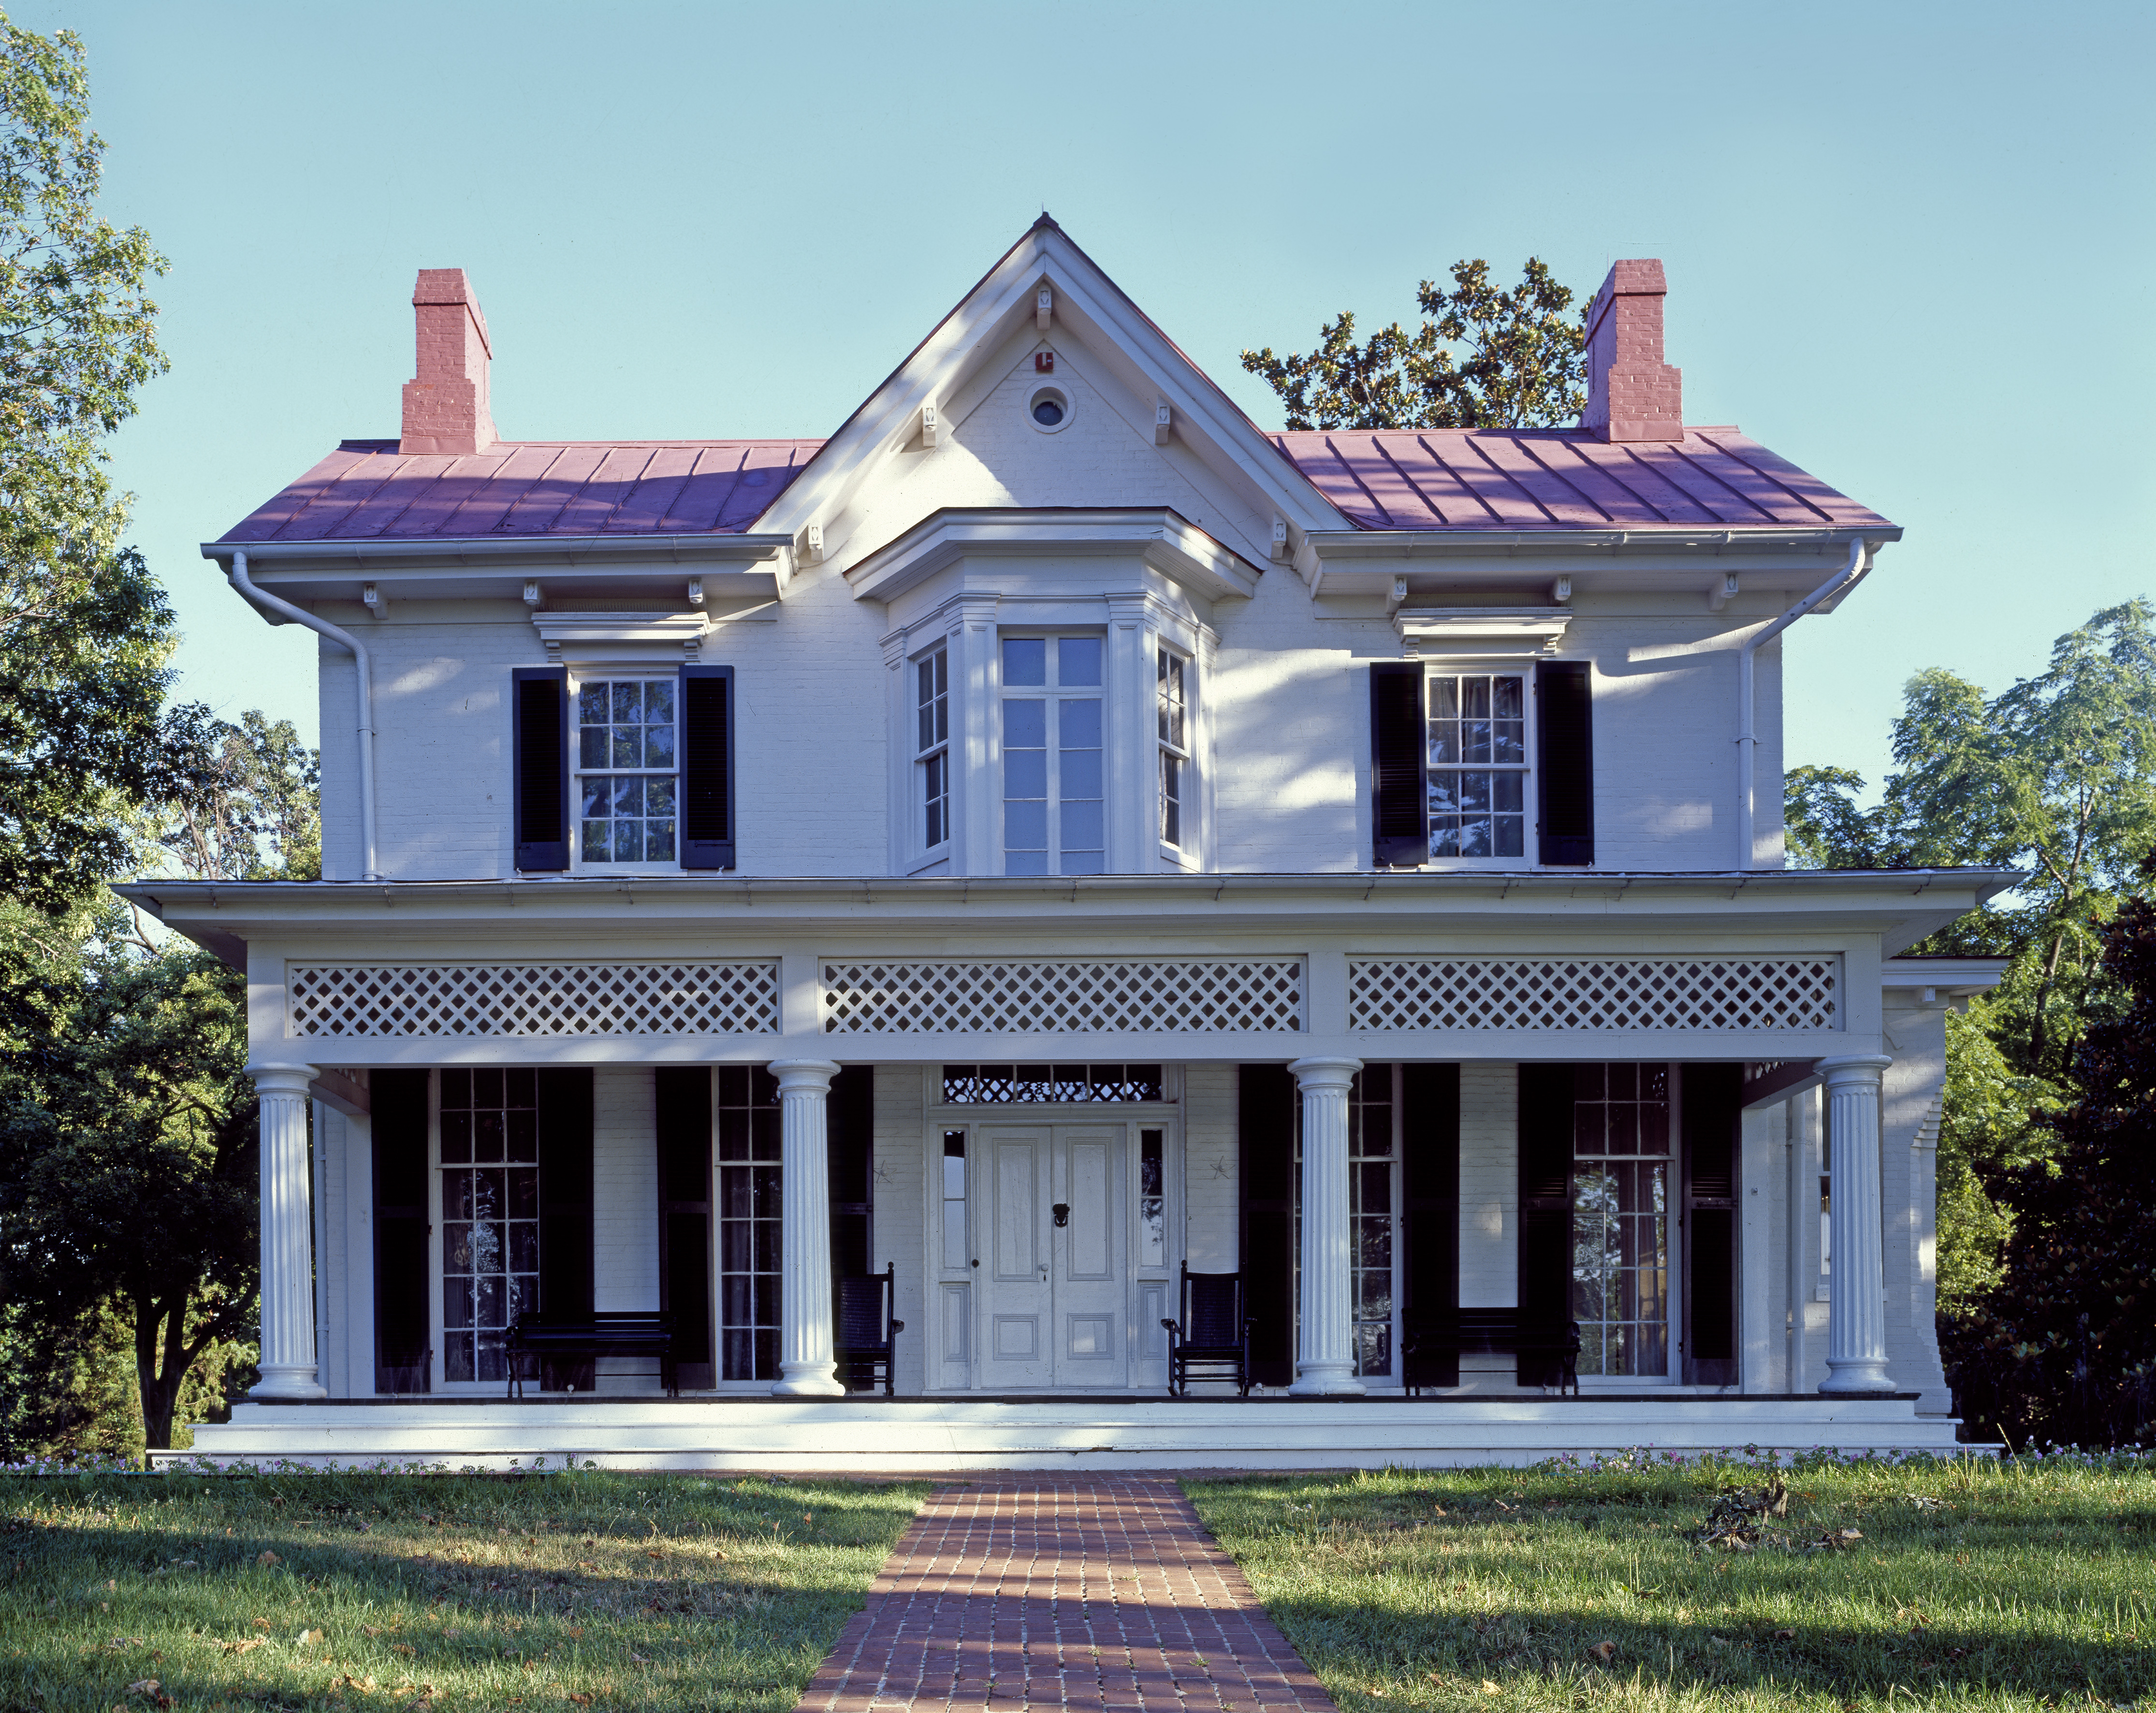 The exterior of the Frederick Douglass house in Washington D.C. The house is white with a pink roof and white columns in front.